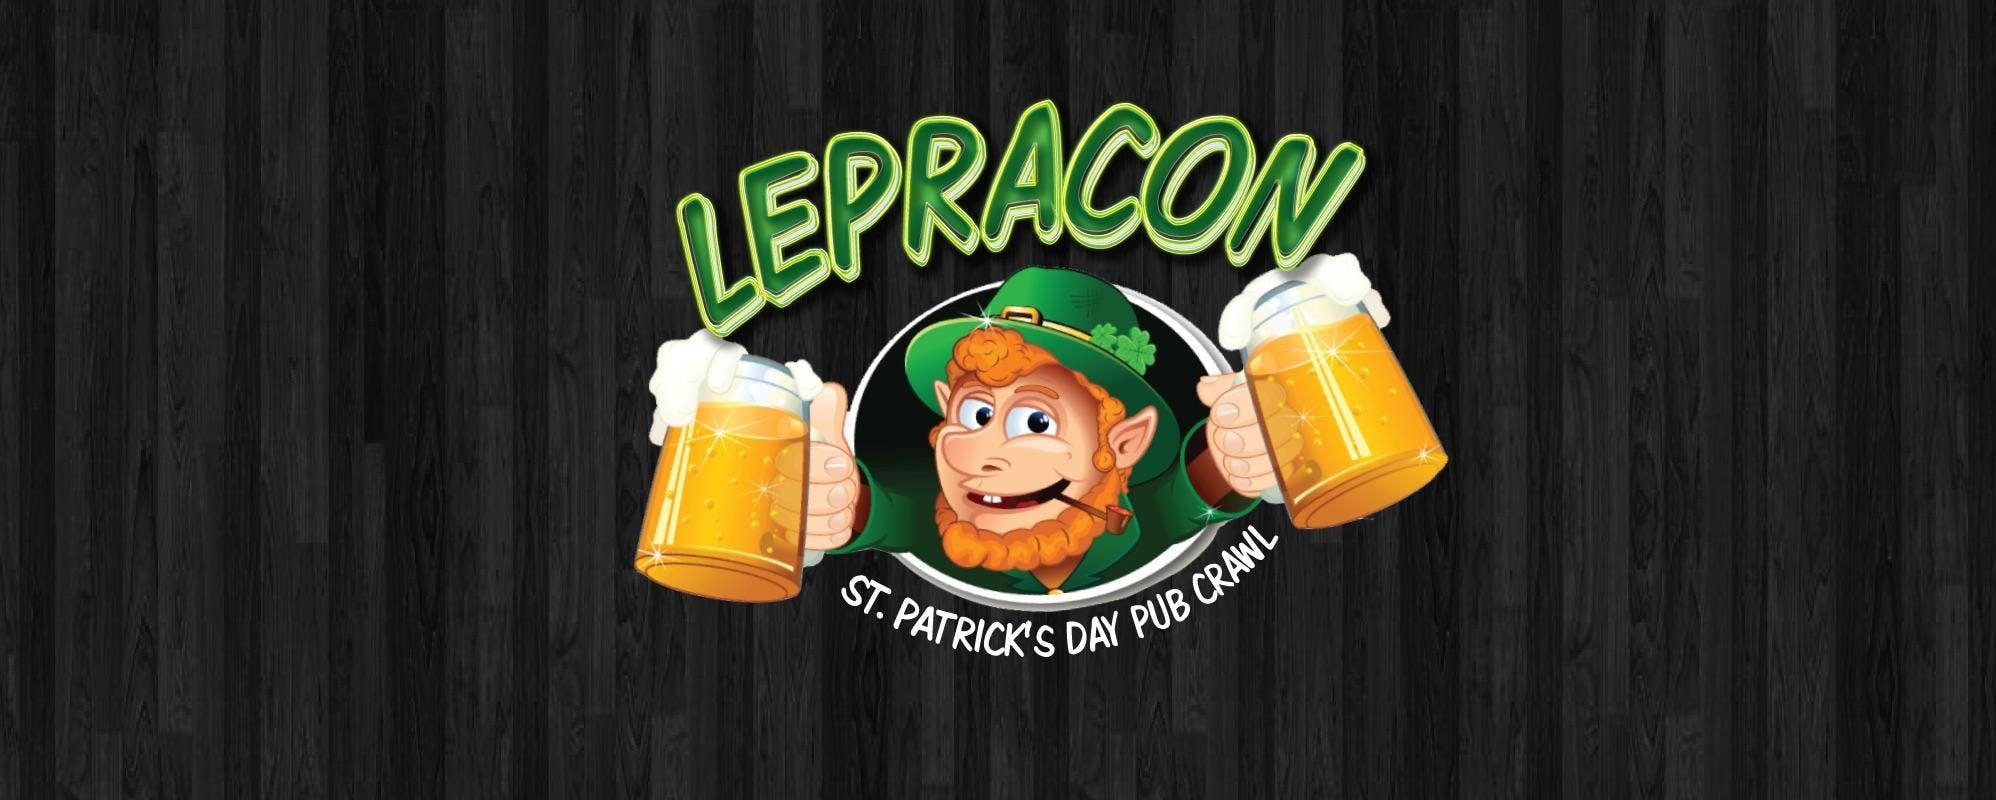 San Francisco St. Patrick's Day Pub Crawl: Le